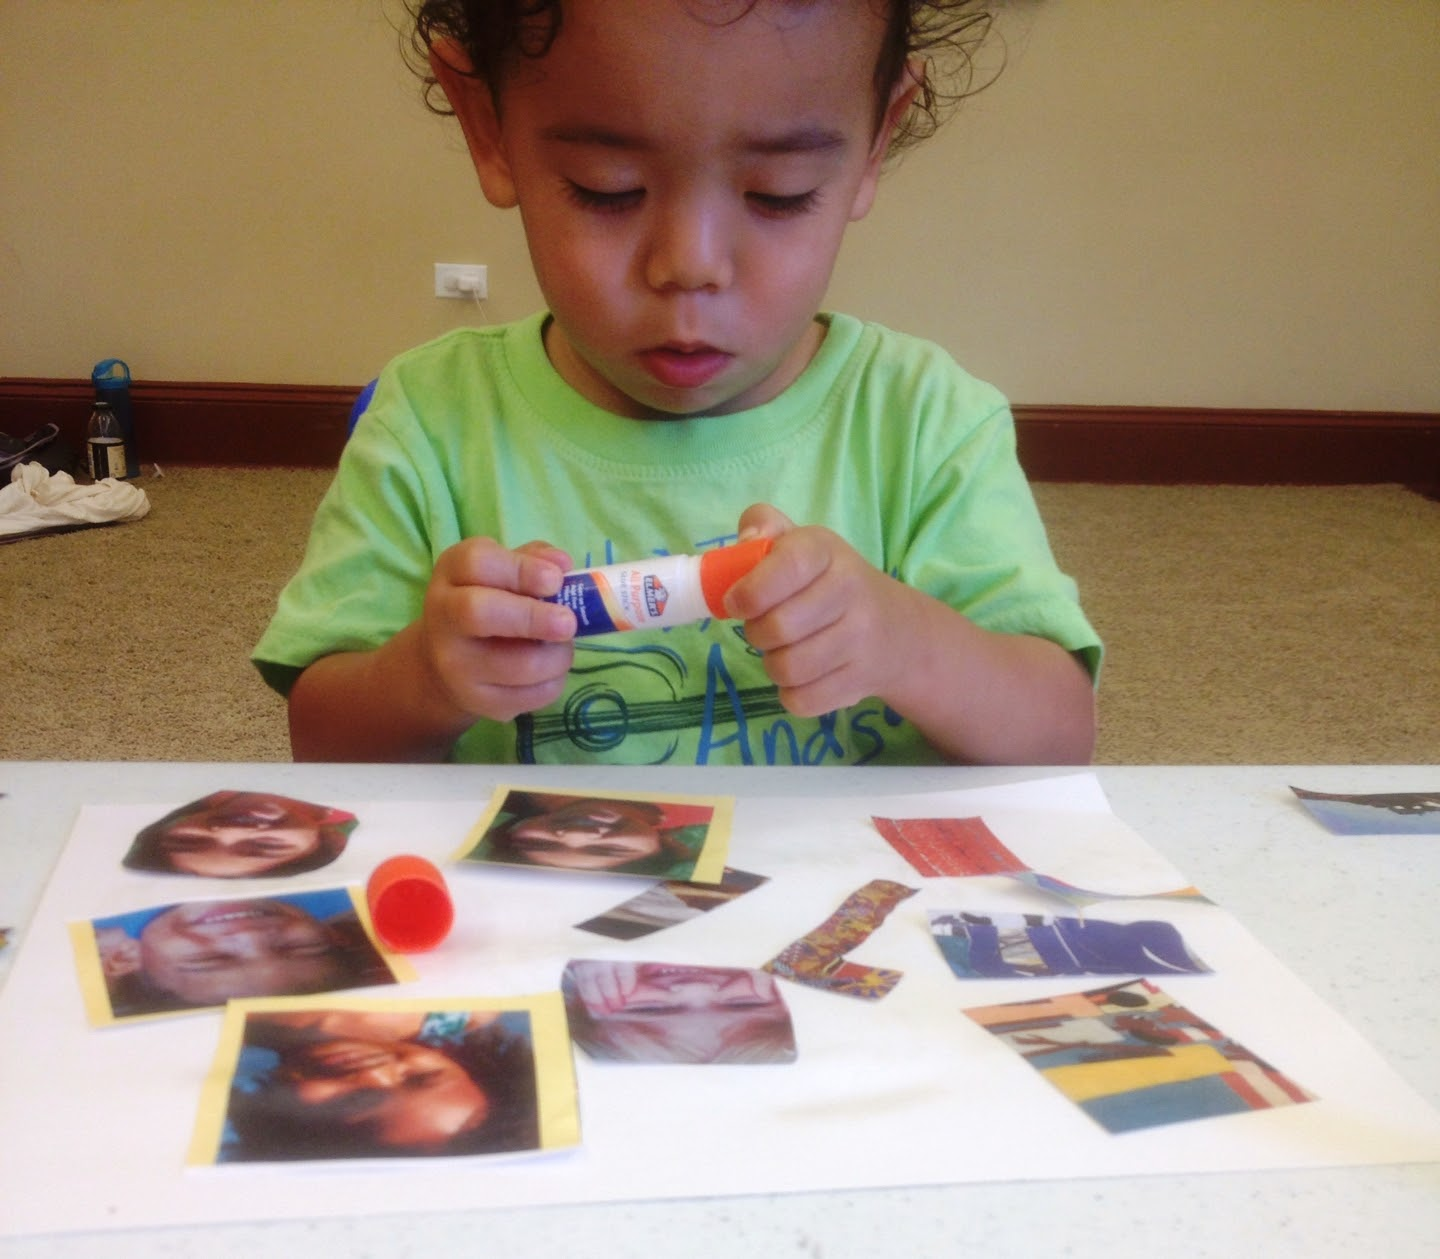 Child holding a glue stick, pasting images to a piece of paper